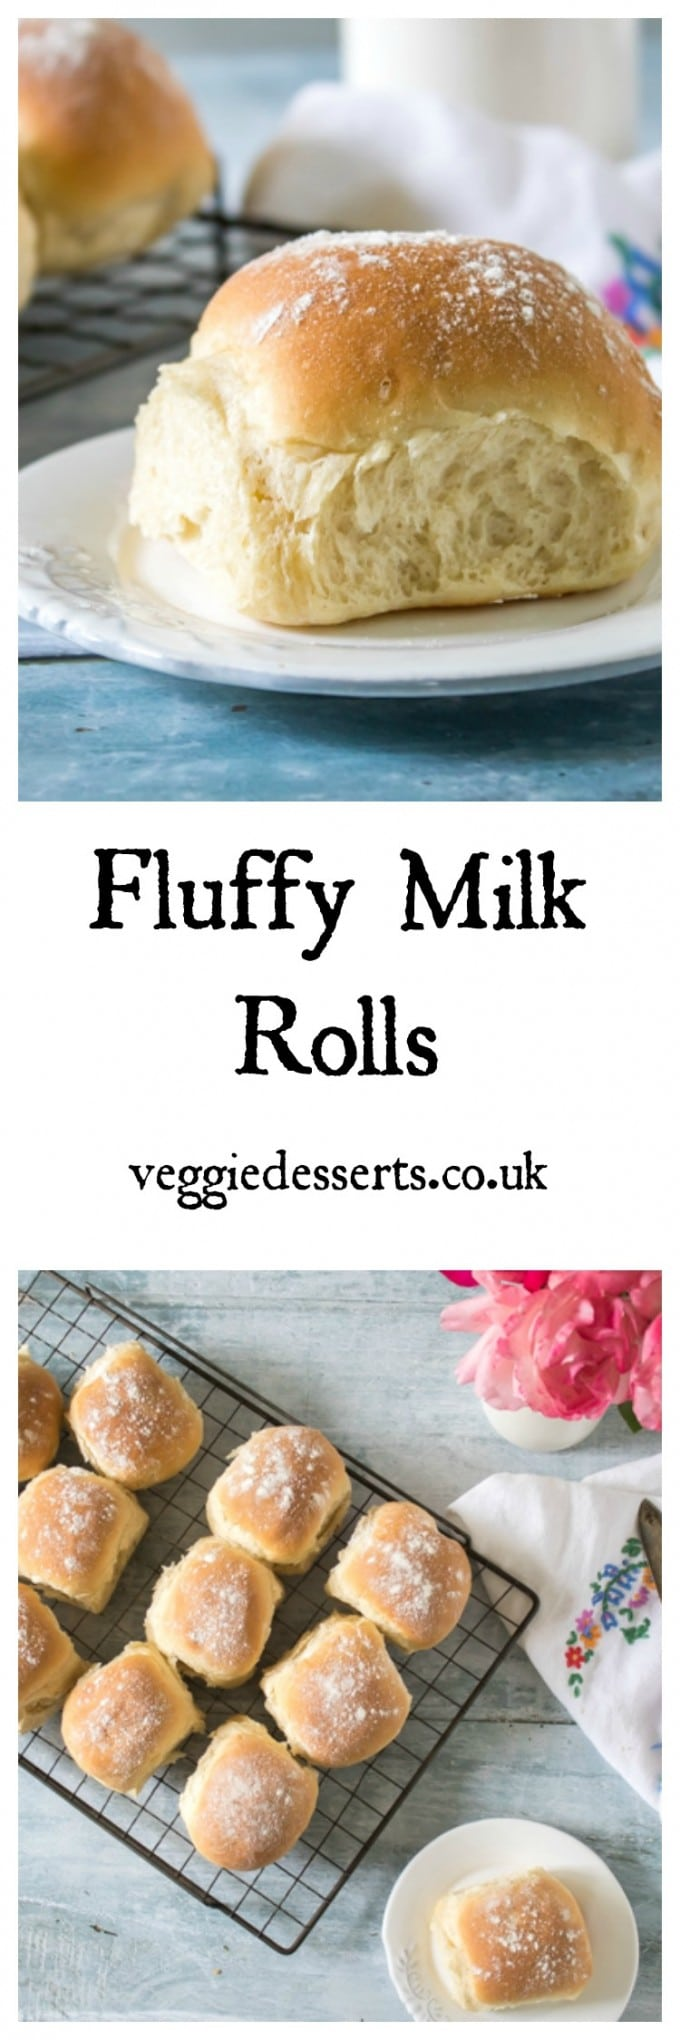 A basket of fluffy milk rolls. They're easy to make with no long kneading times. And you can knead in the bowl so less mess. #bread #milkrolls #breadrecipe #recipe #baking